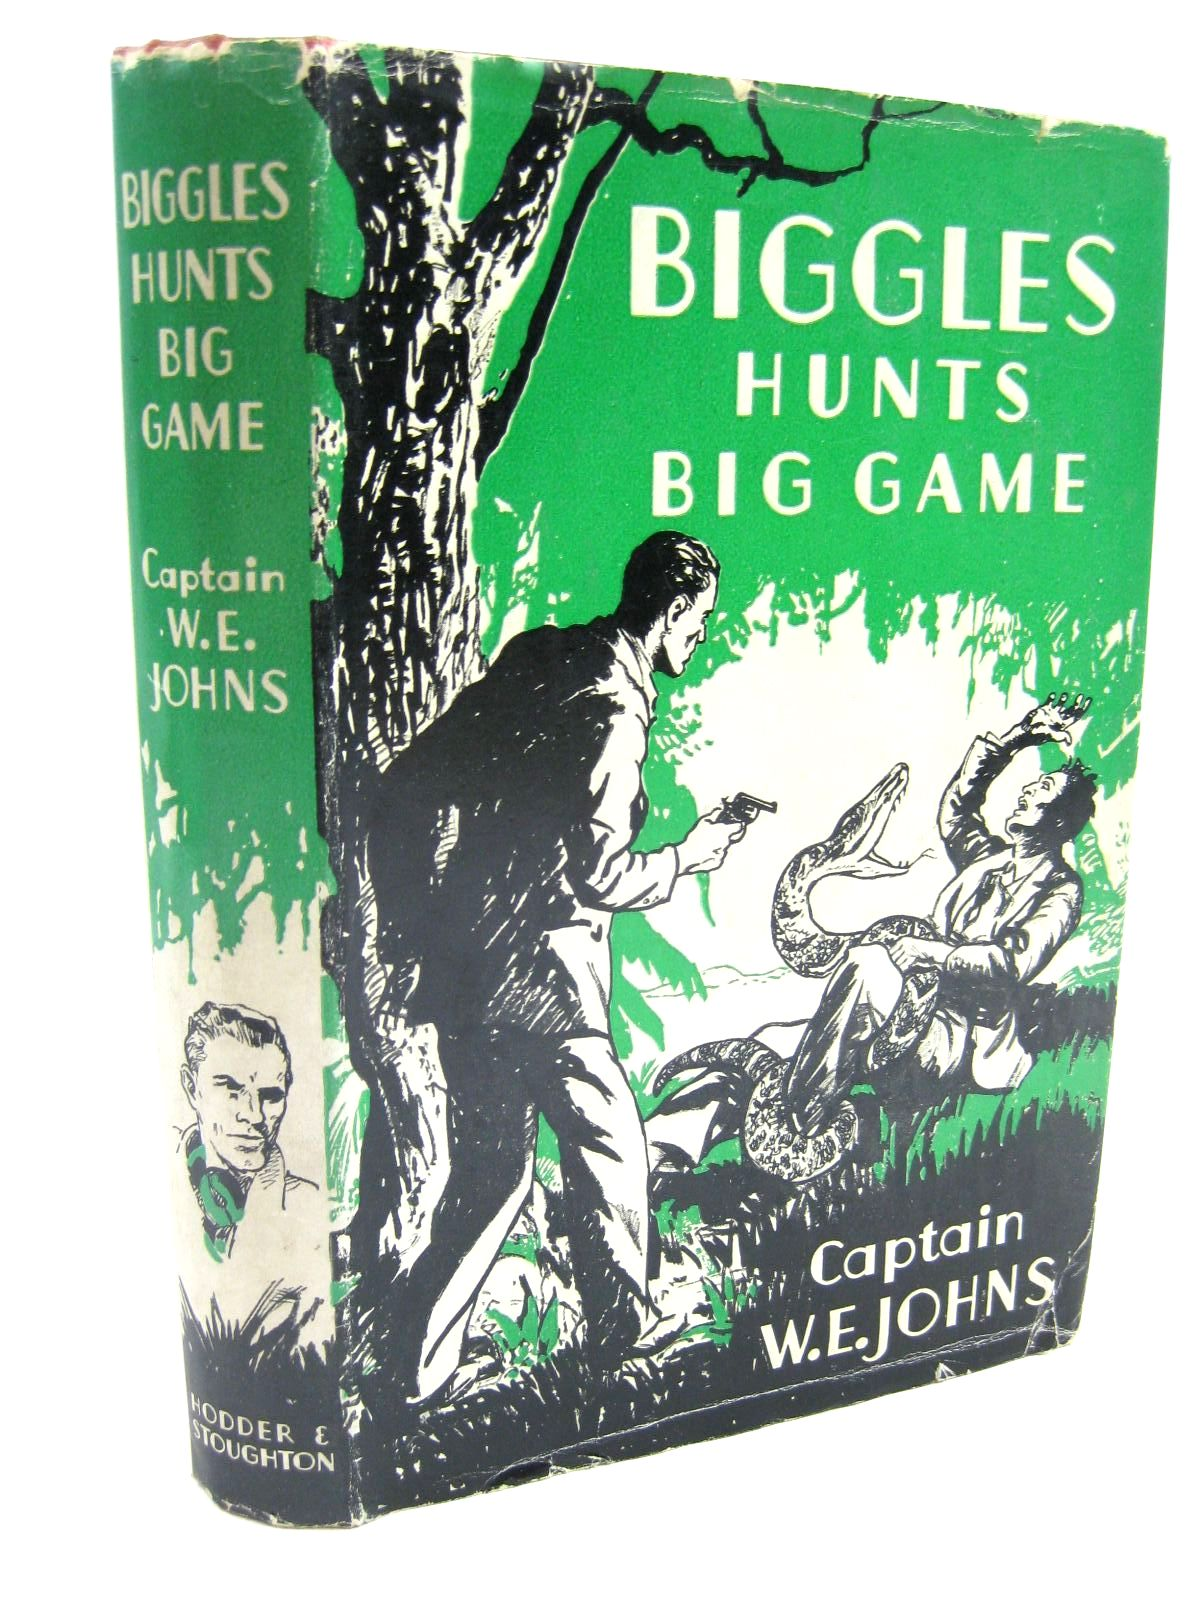 Photo of BIGGLES HUNTS BIG GAME written by Johns, W.E. illustrated by Stead,  published by Hodder & Stoughton (STOCK CODE: 1316600)  for sale by Stella & Rose's Books